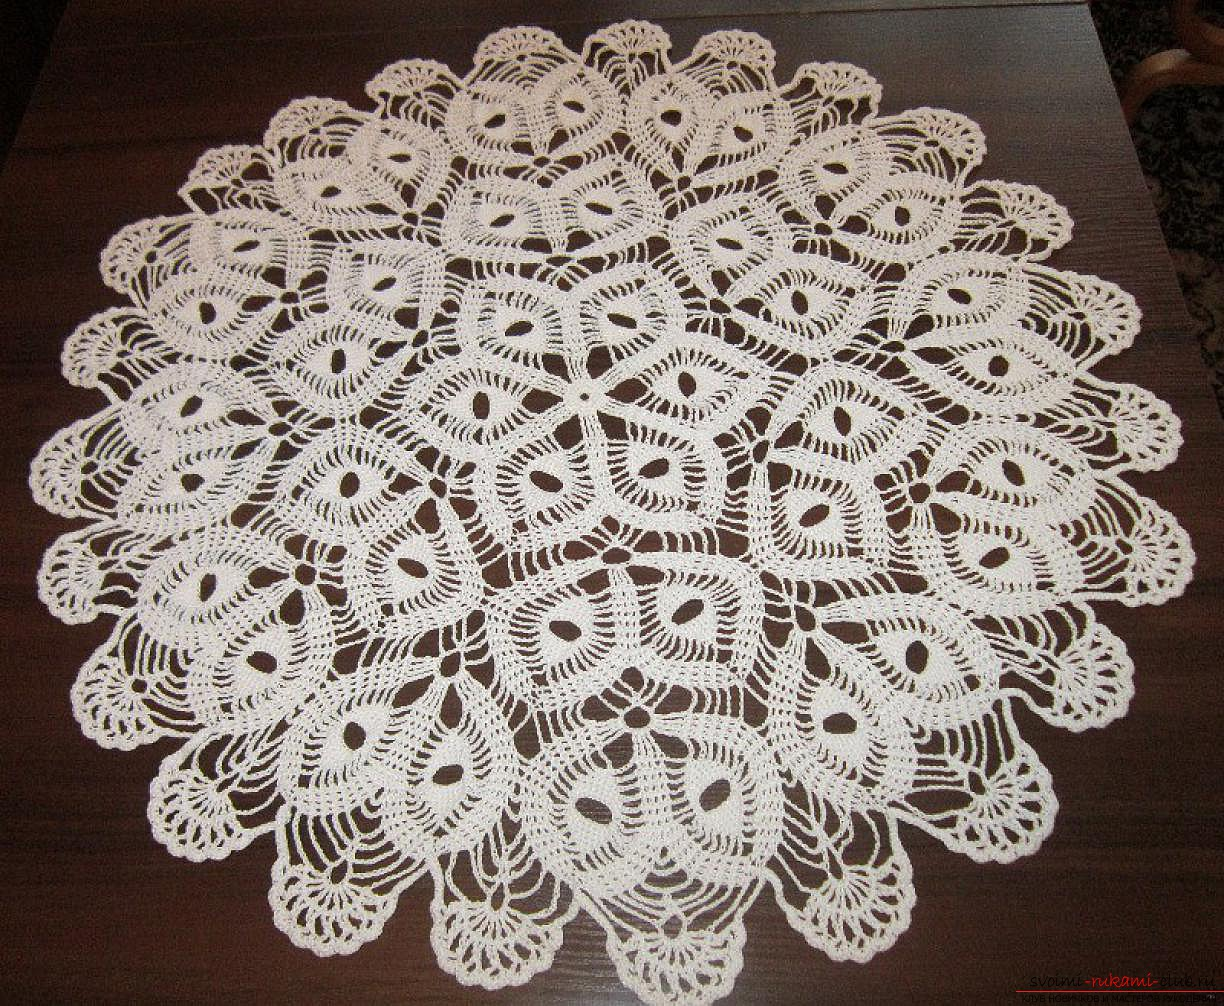 crocheted air patterns. Photo # 2